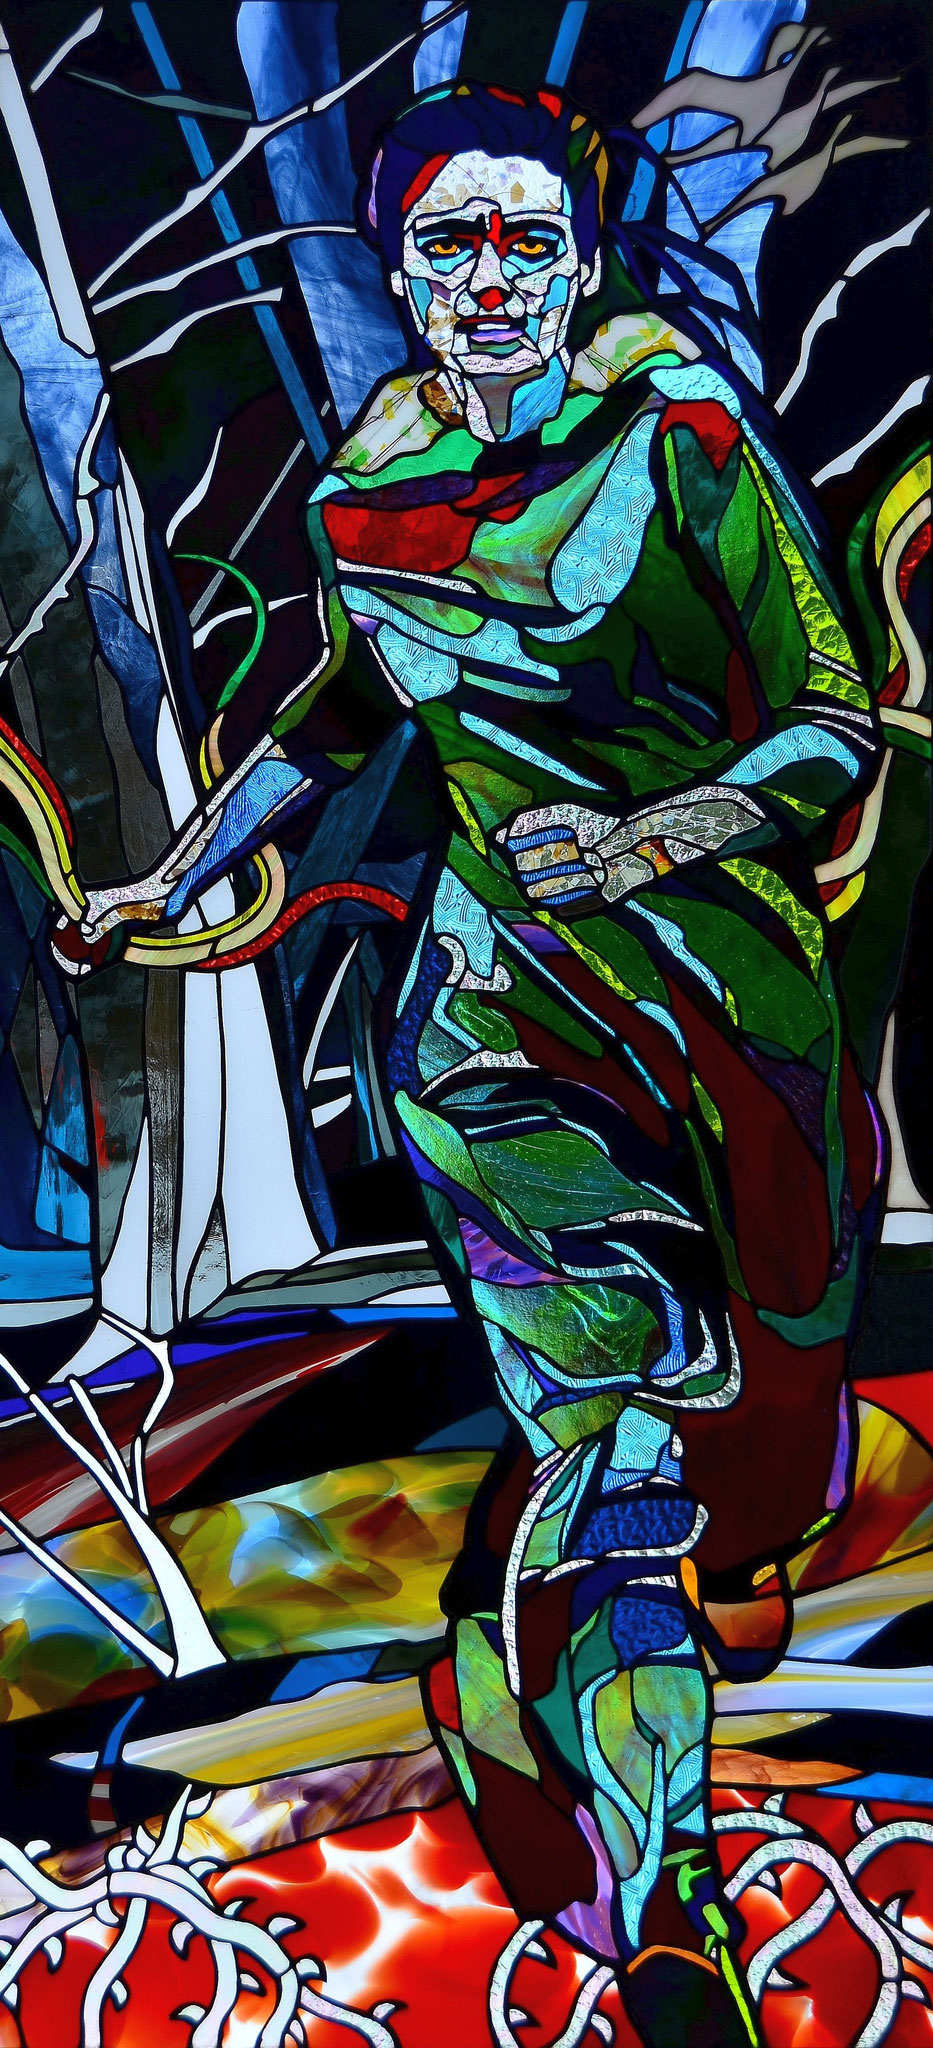 APPROACHING SPRING  26 x 54 inches stained glass, photo by Lloyd Howell